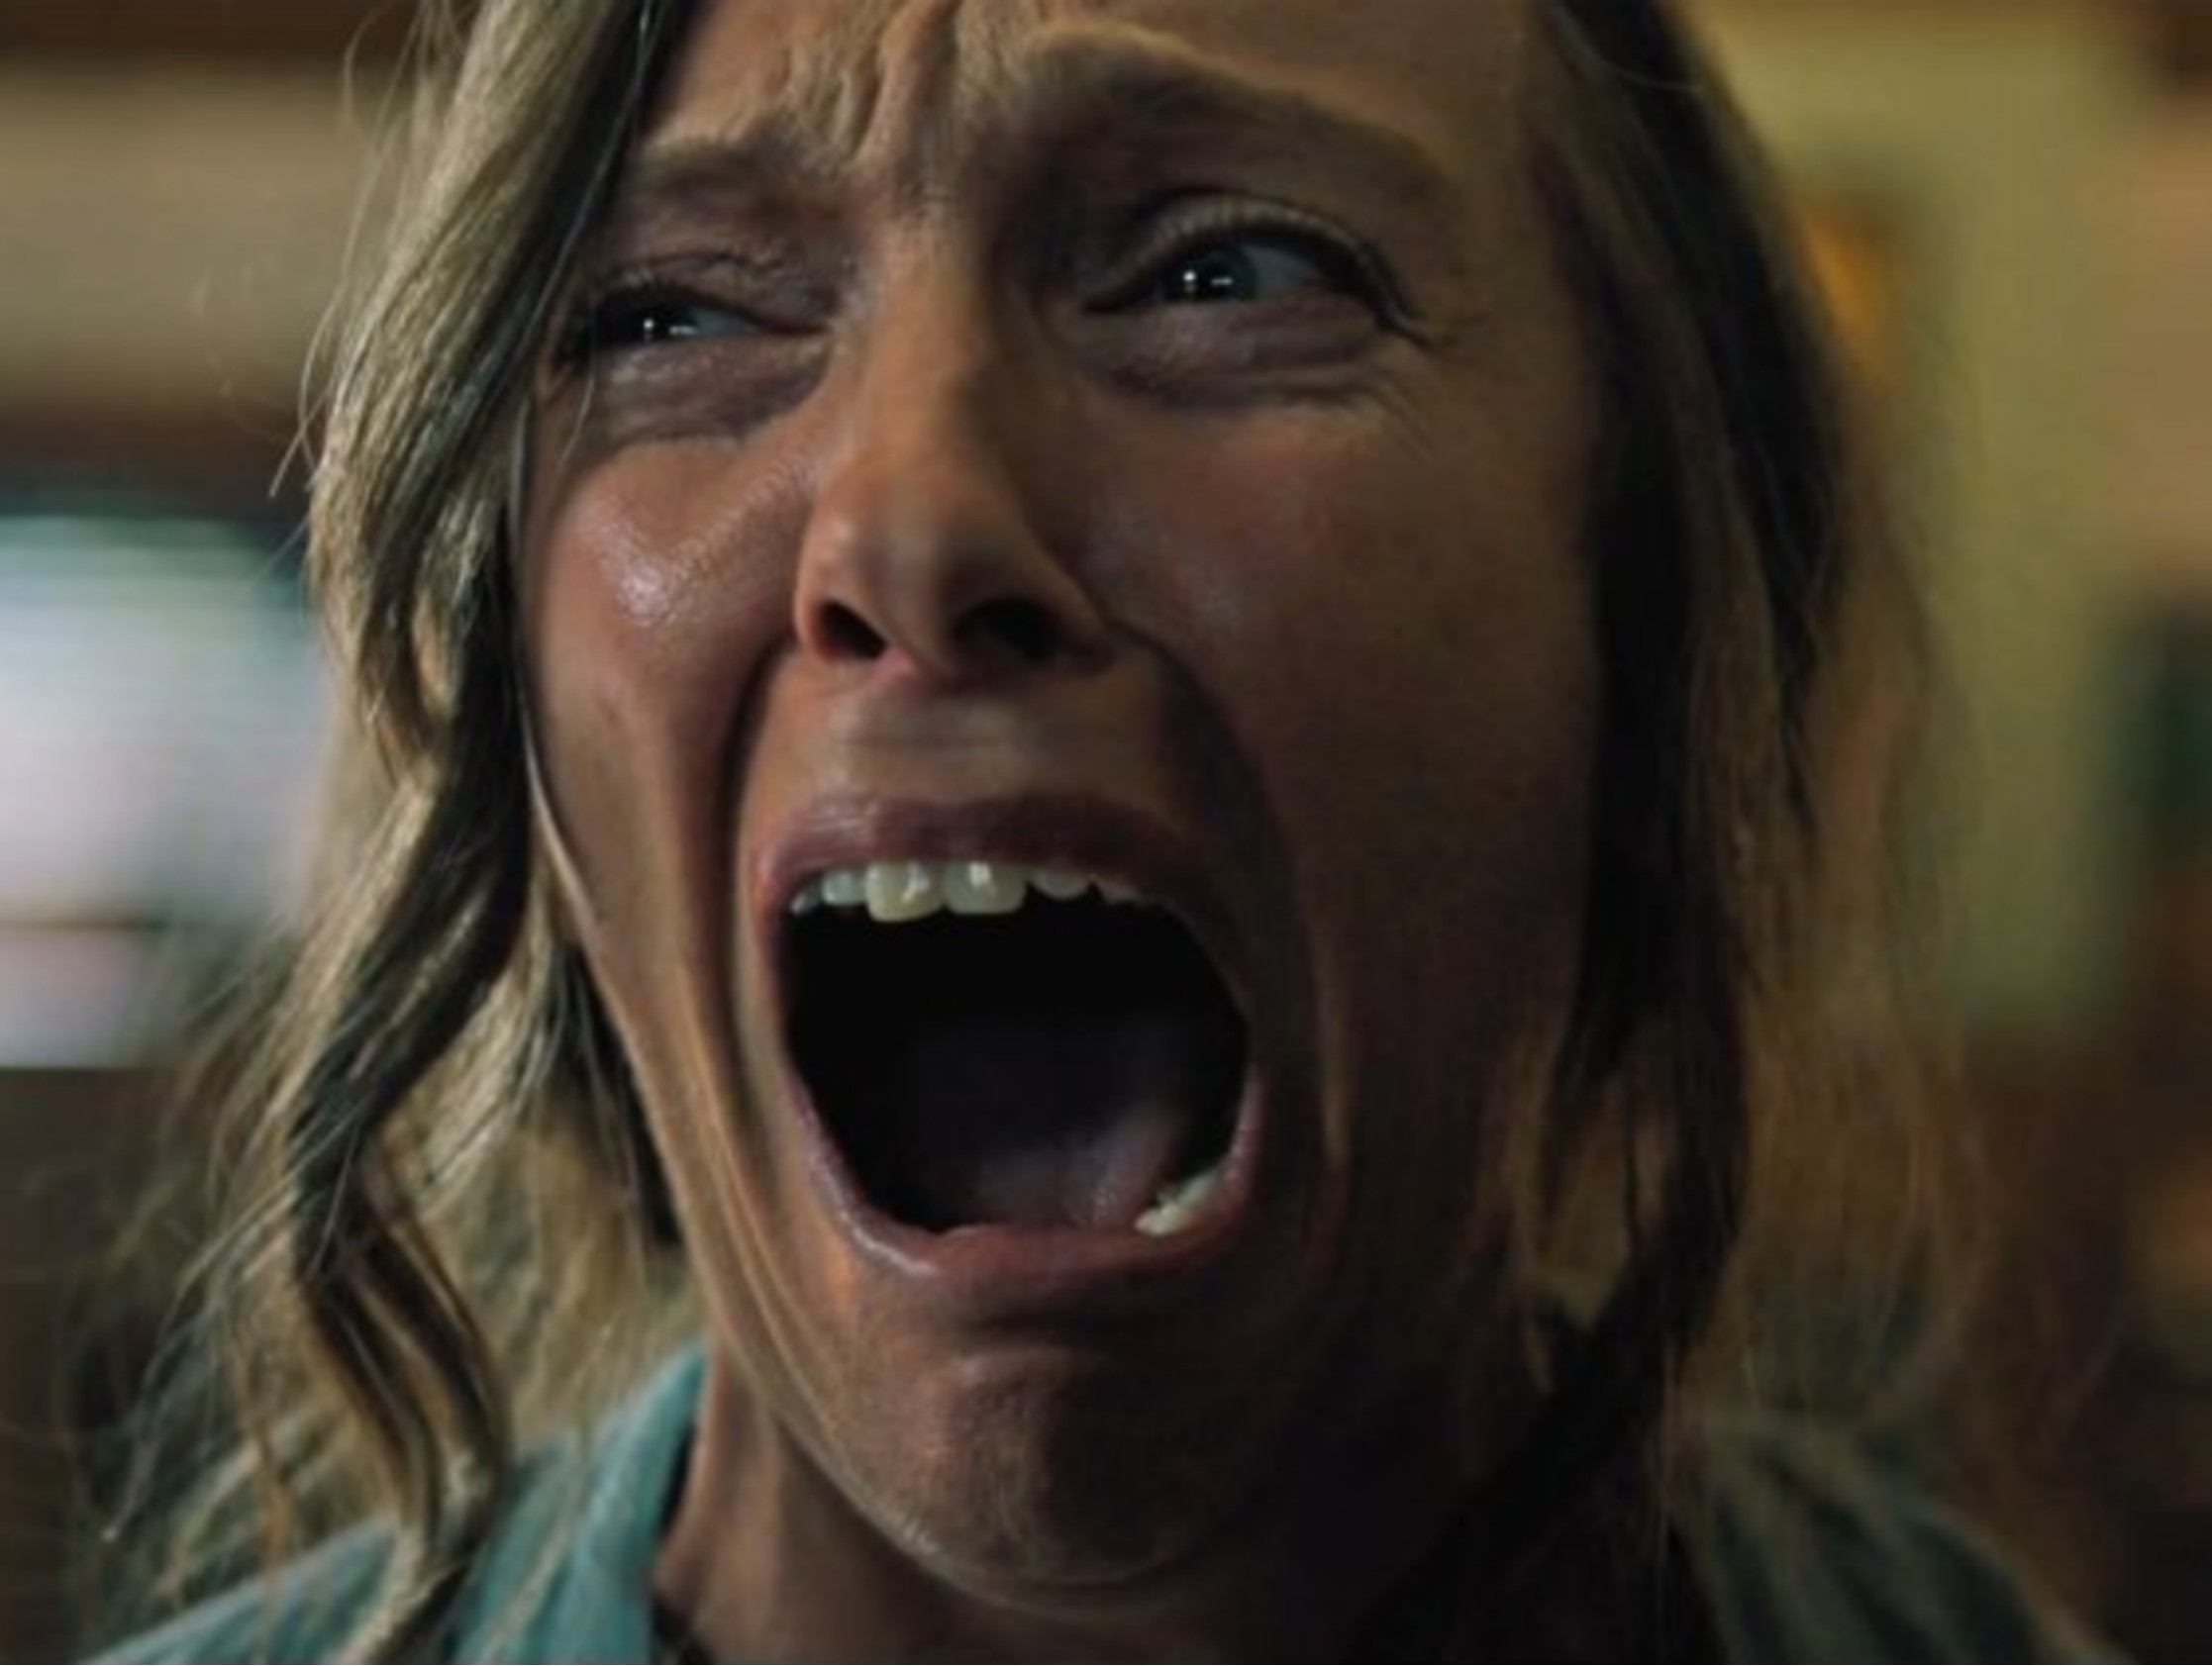 WATCH Trailer   Hereditary could be the next scariest movie after The Exorcist